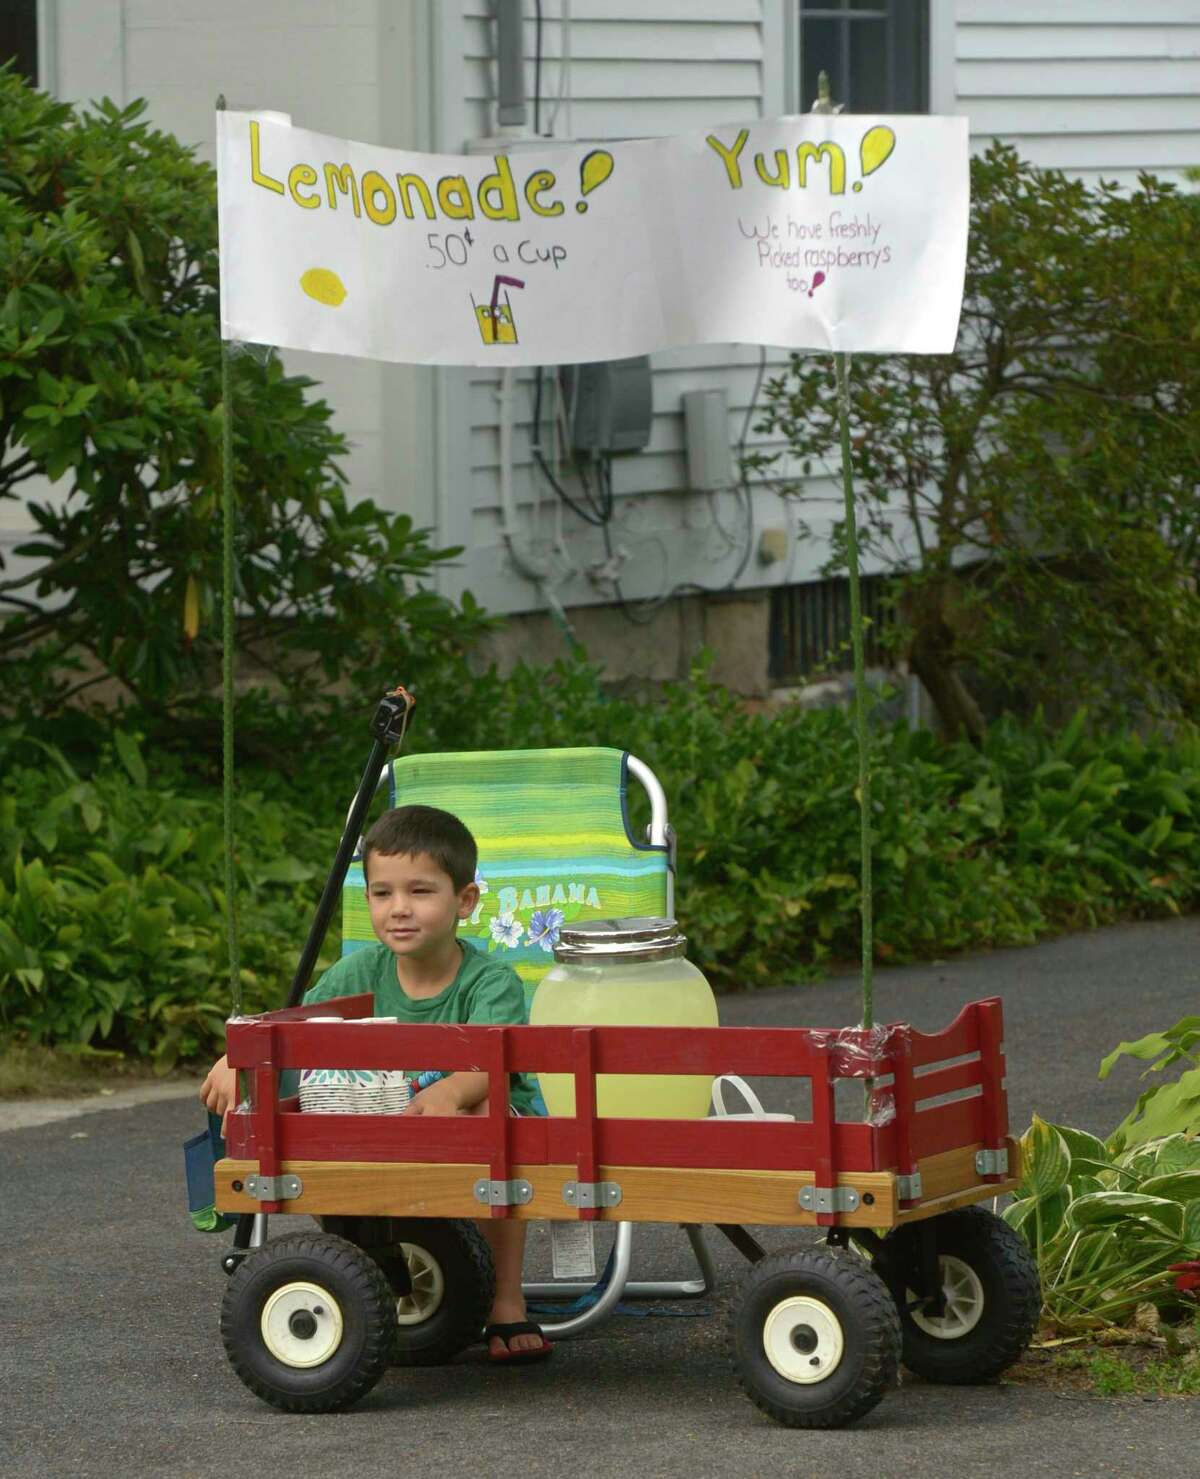 Jake Ragan, 7, of Newtown, mans a lemonade stand at the 2019 Newtown Labor Day Parade, Monday, September 2, 2019, in Newtown, Conn.